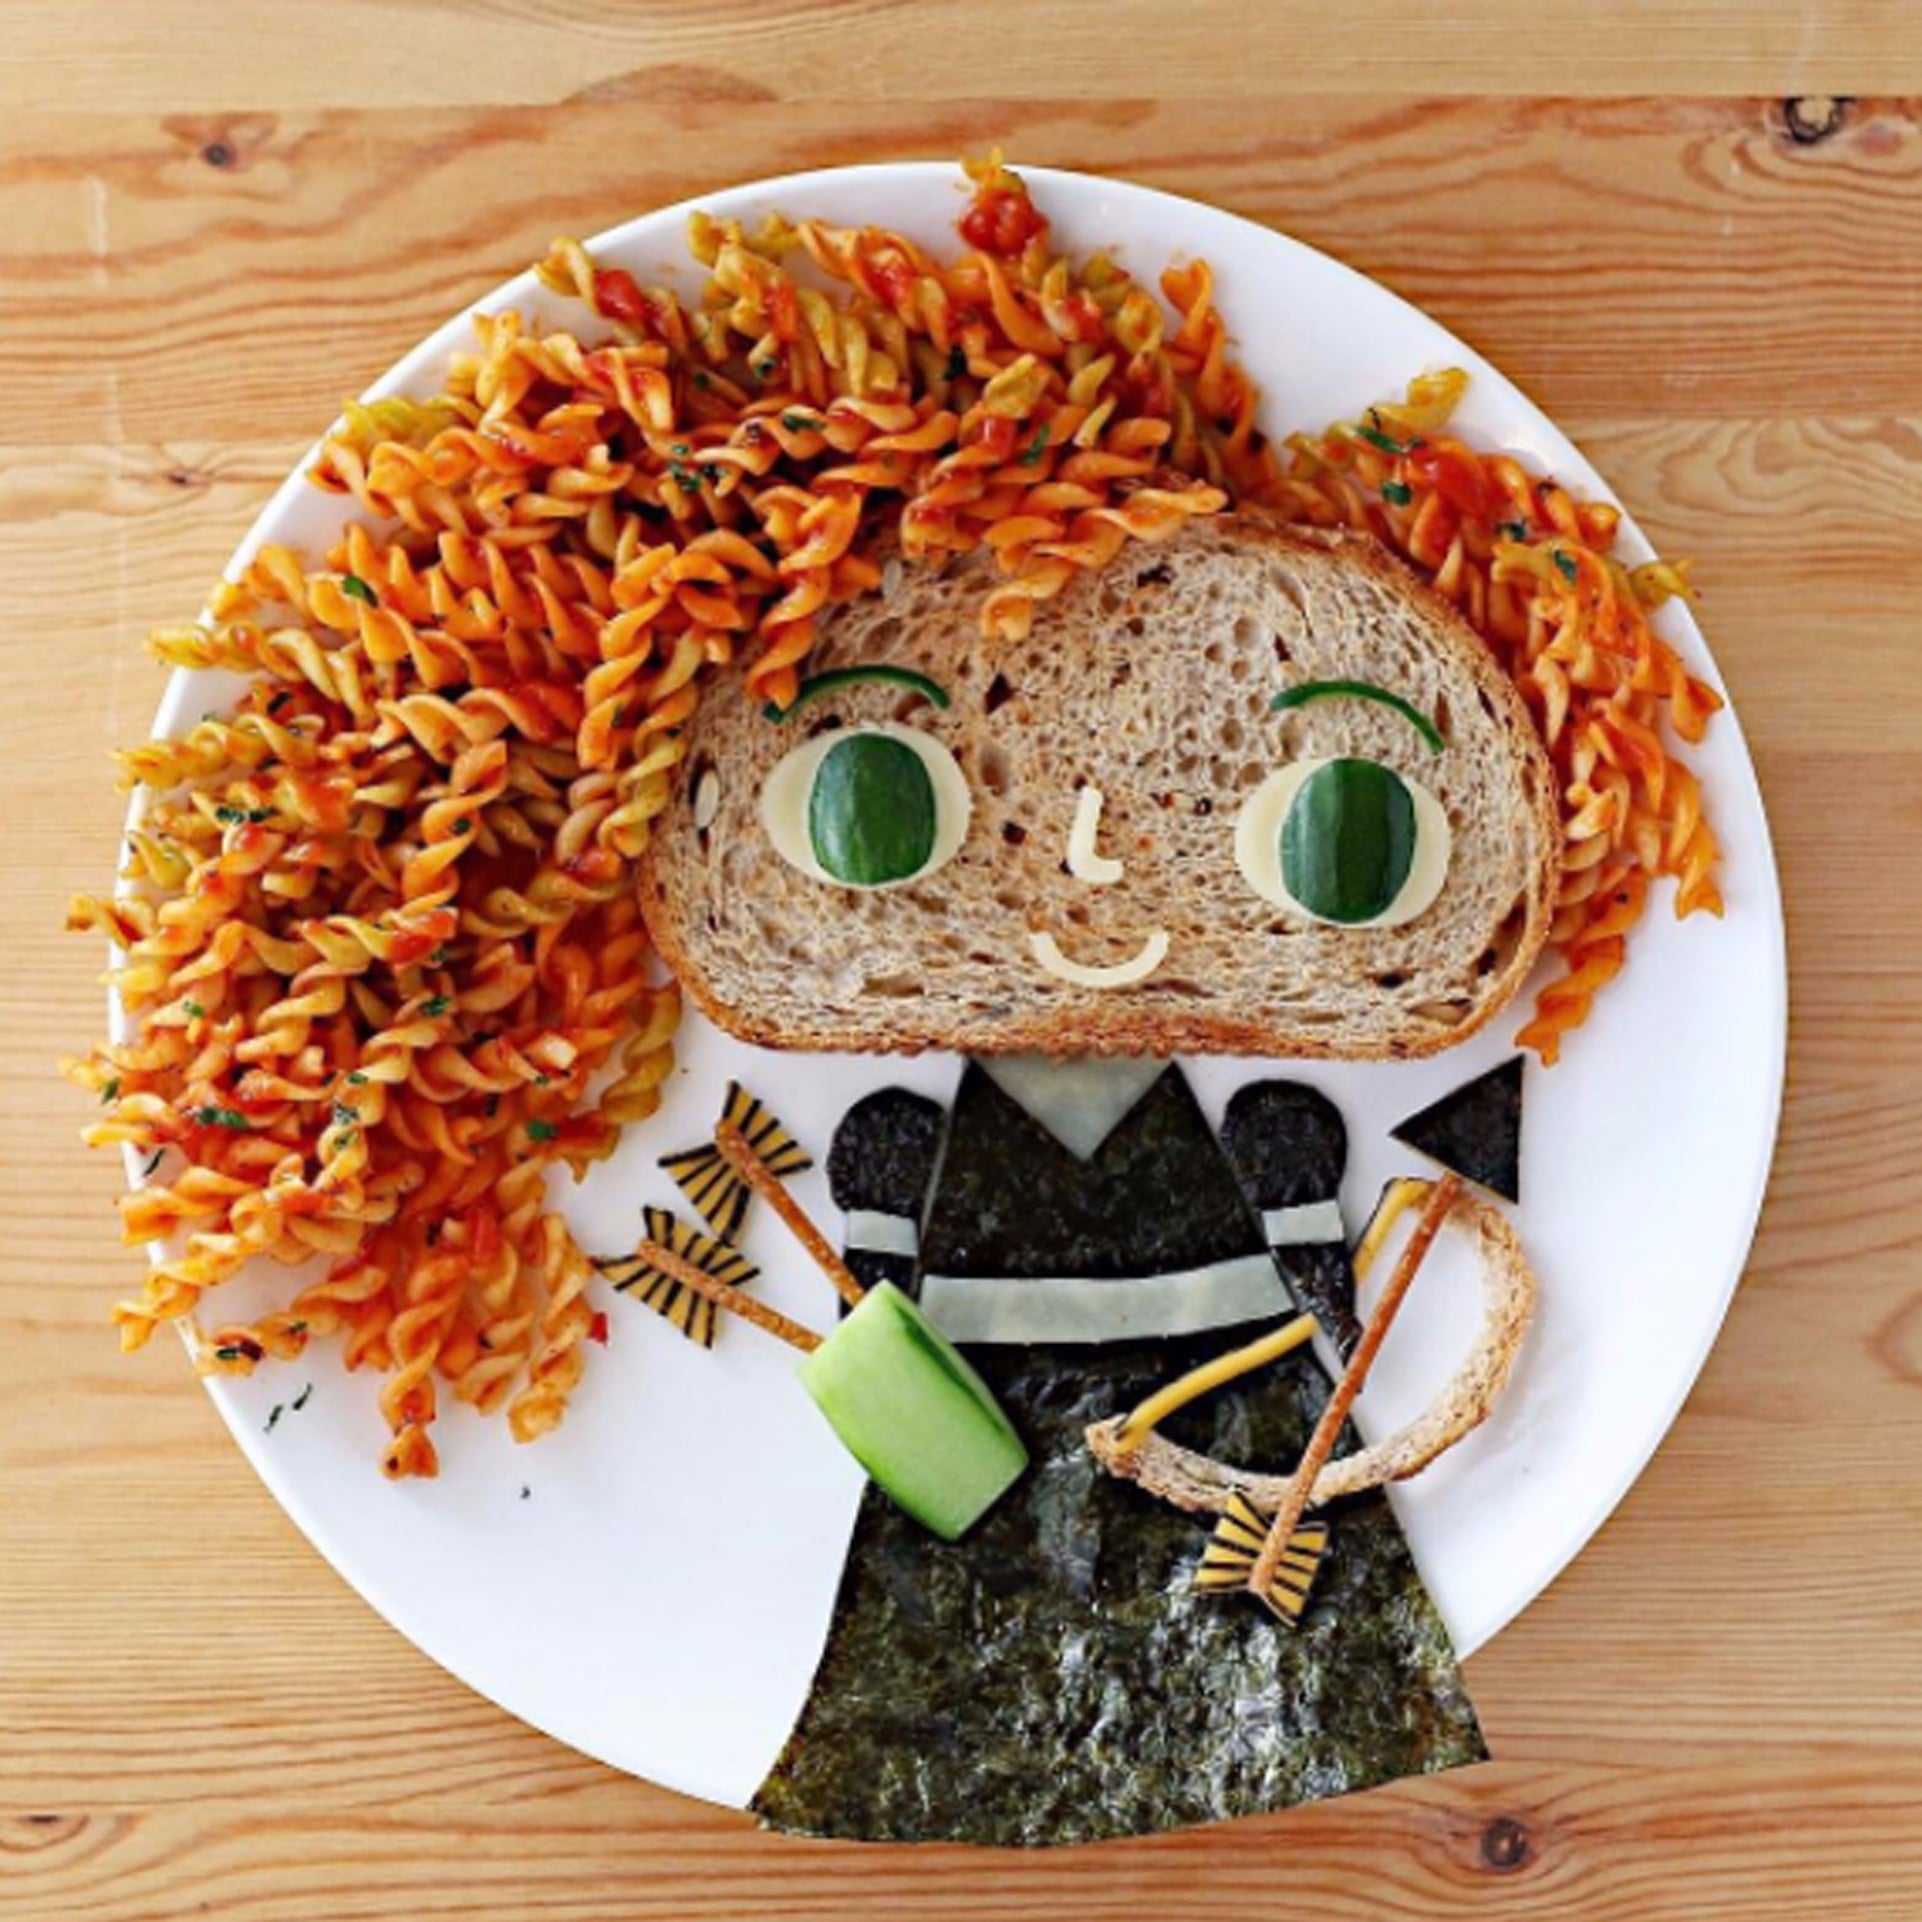 food turned into an art piece on a plate